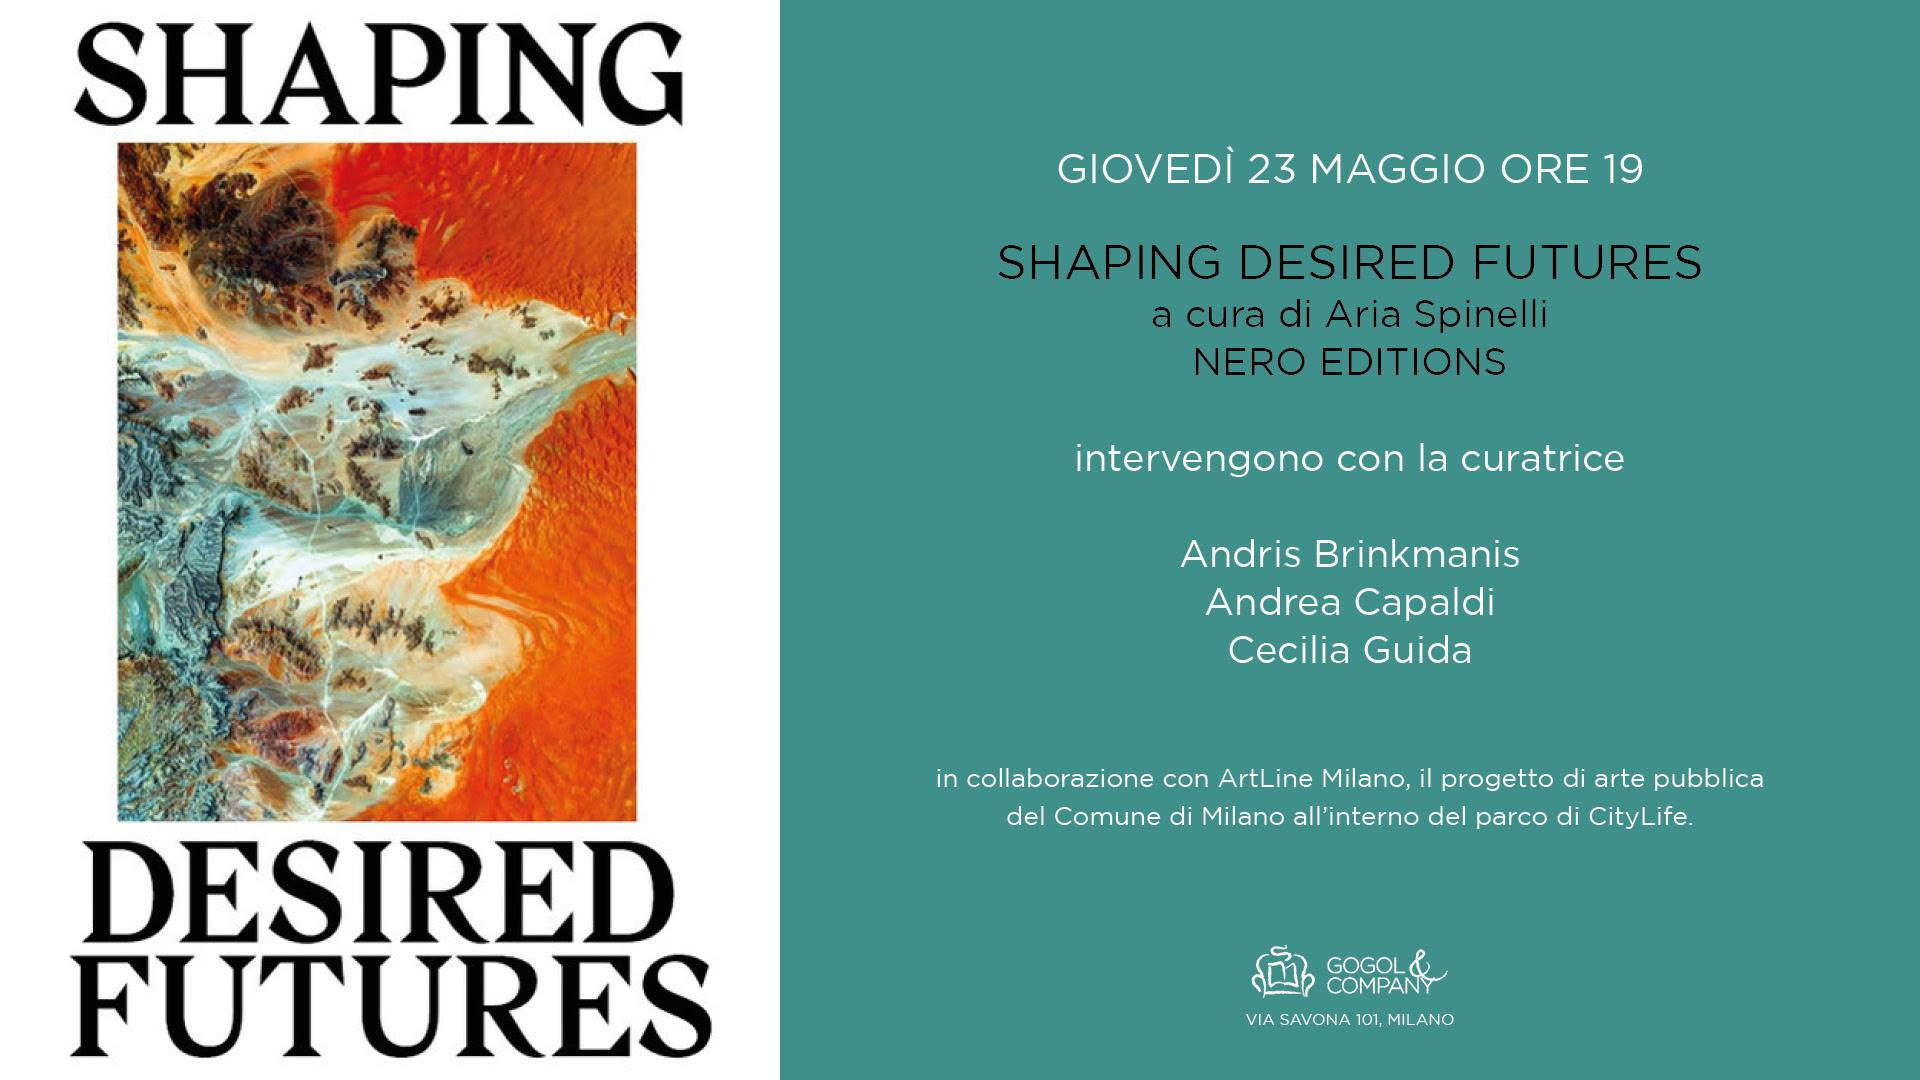 SHAPING DESIRED FUTURES